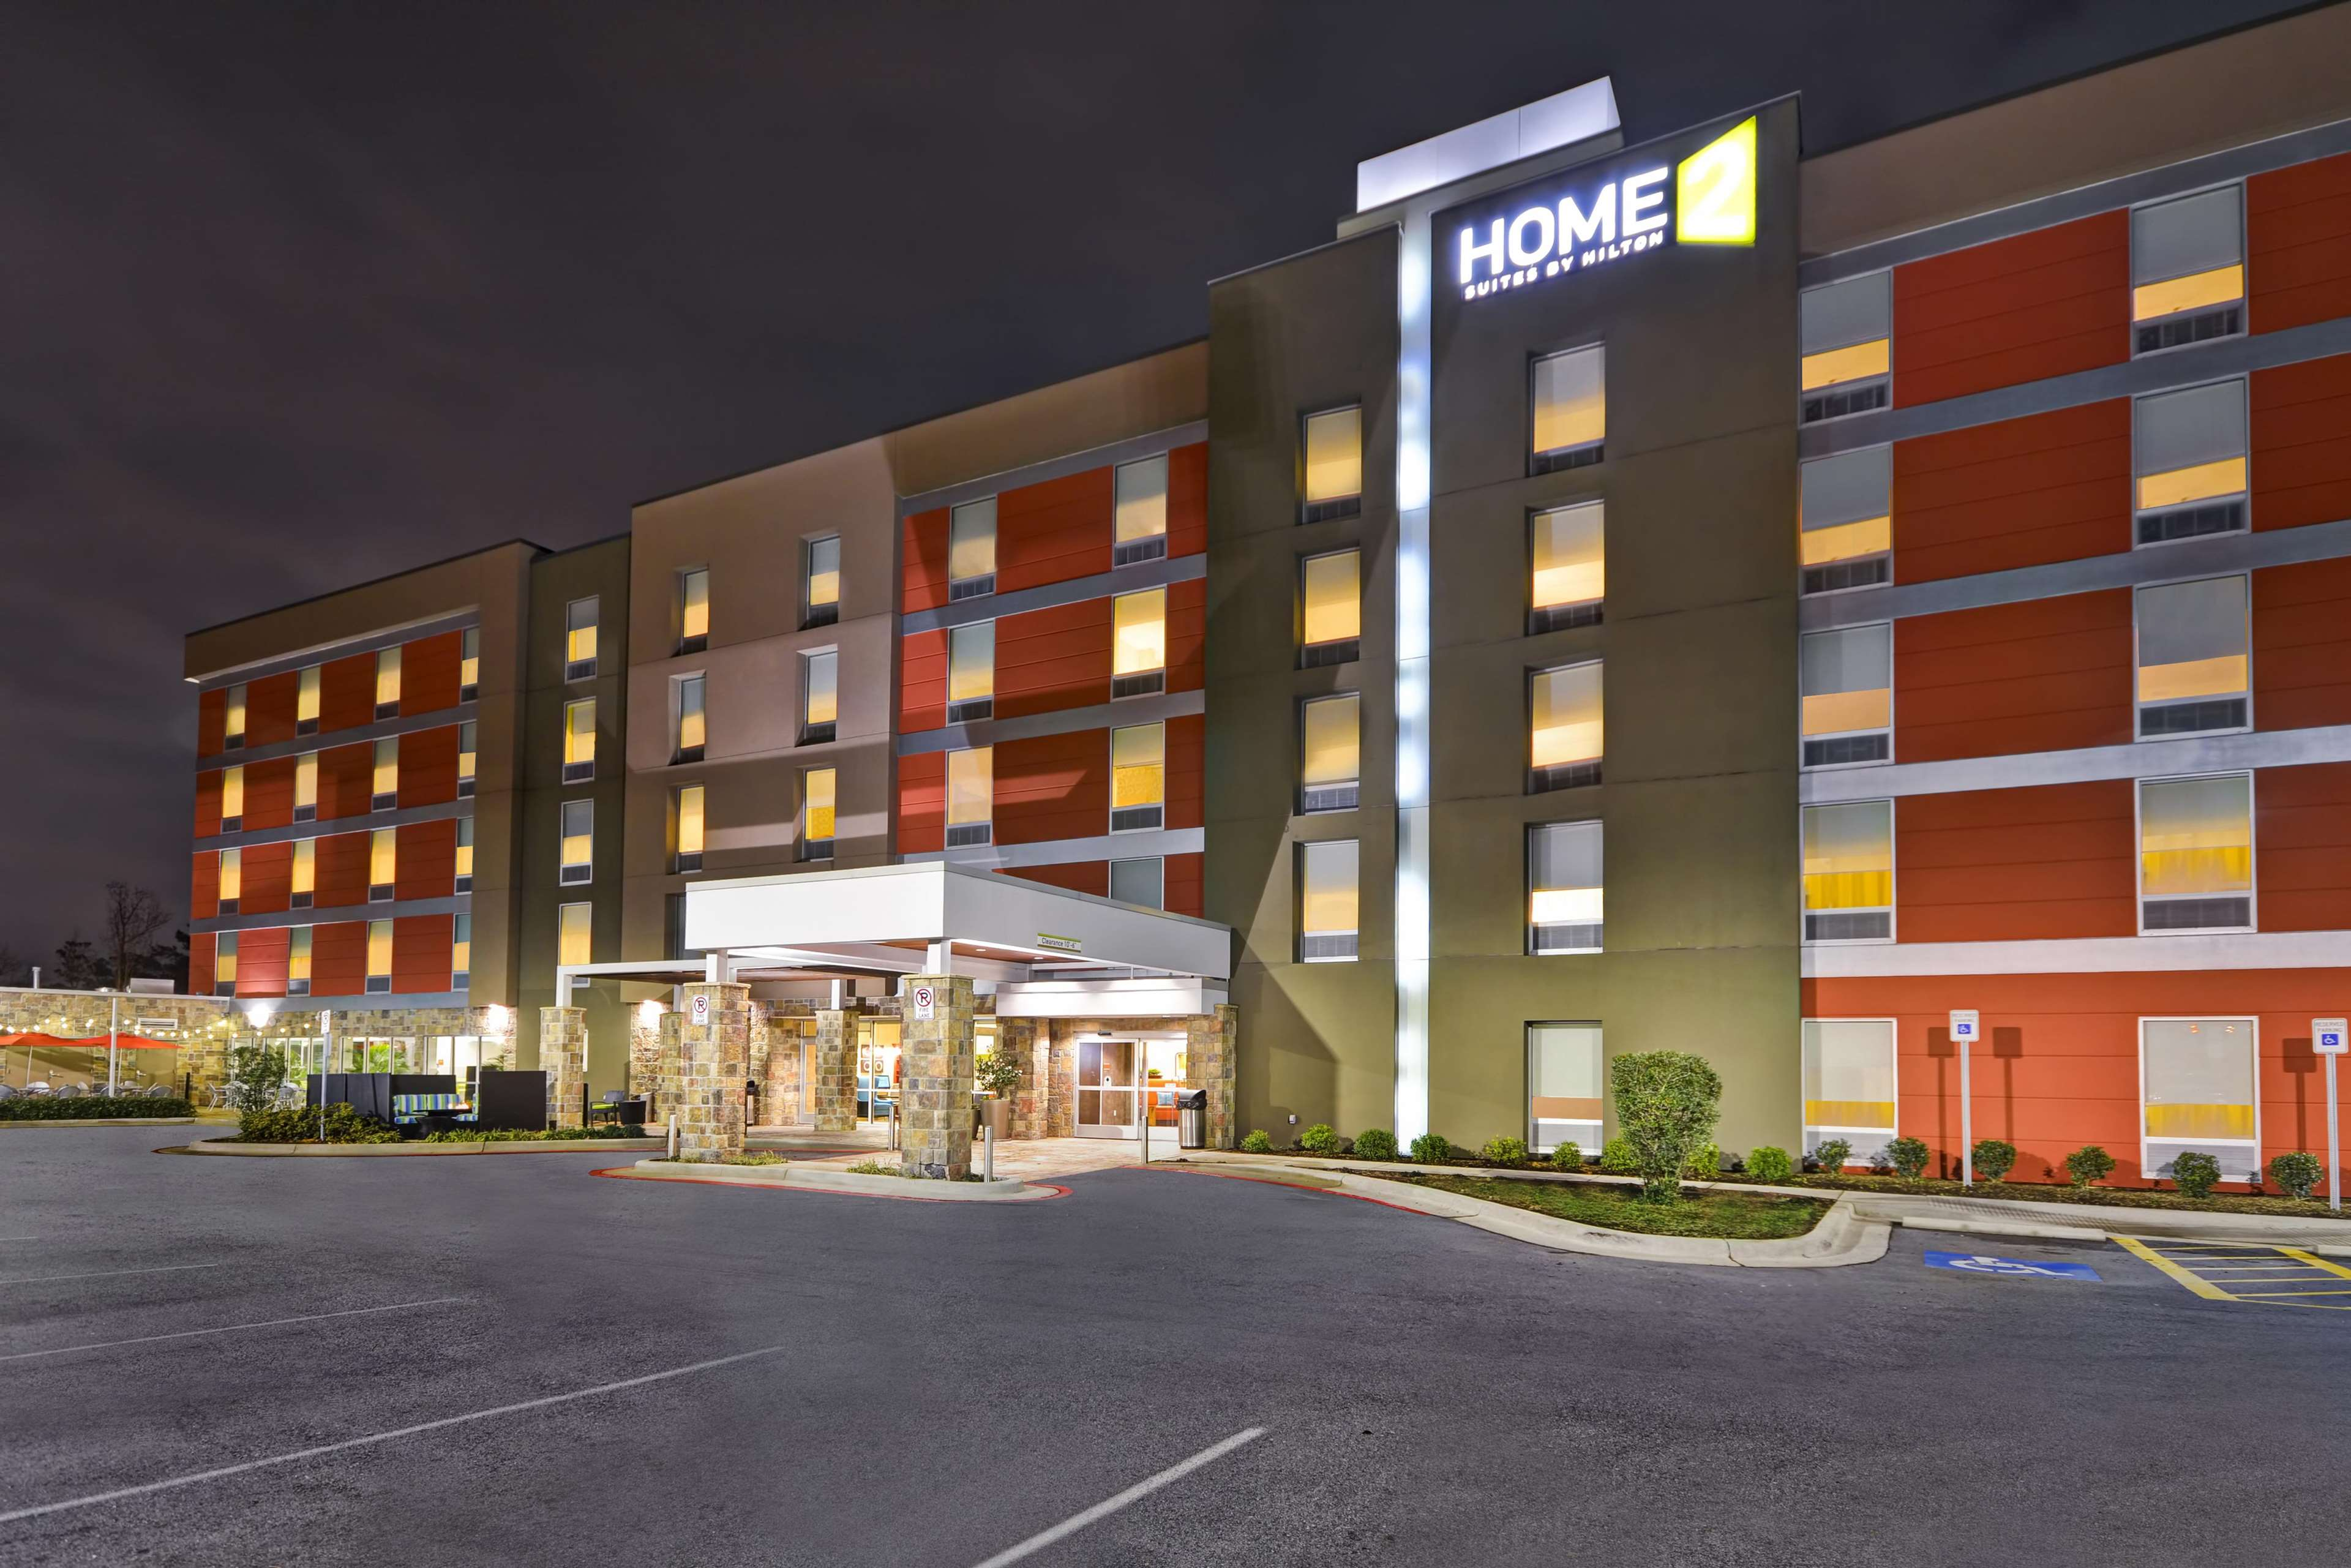 Home2 Suites by Hilton Little Rock West image 1